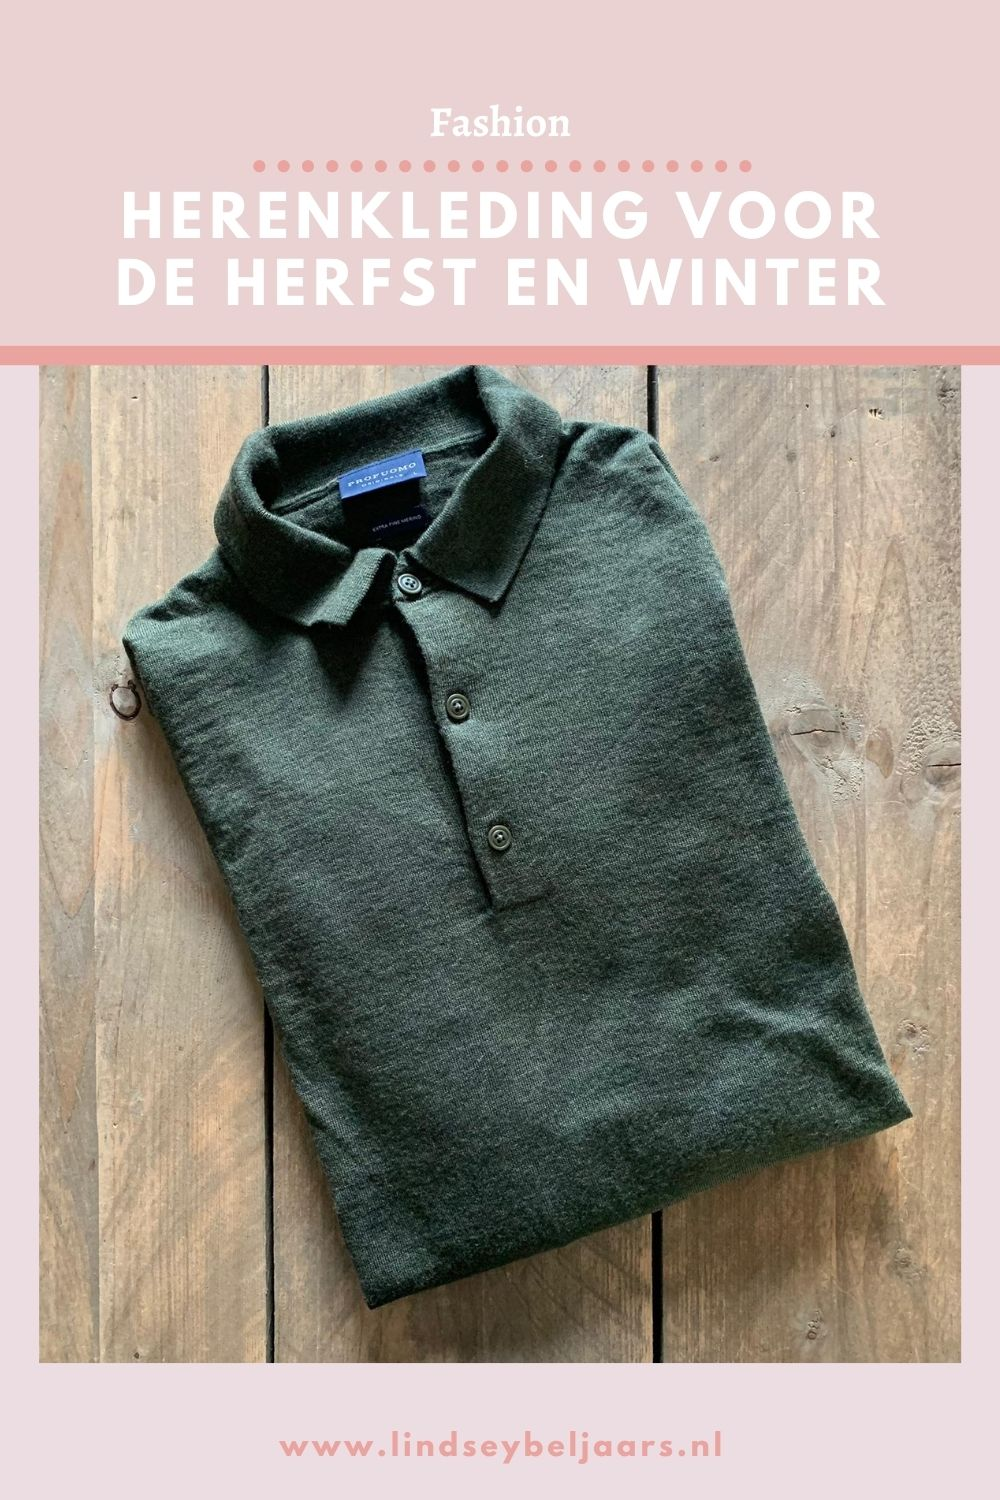 Perfecte herenkleding voor de herfst en winter